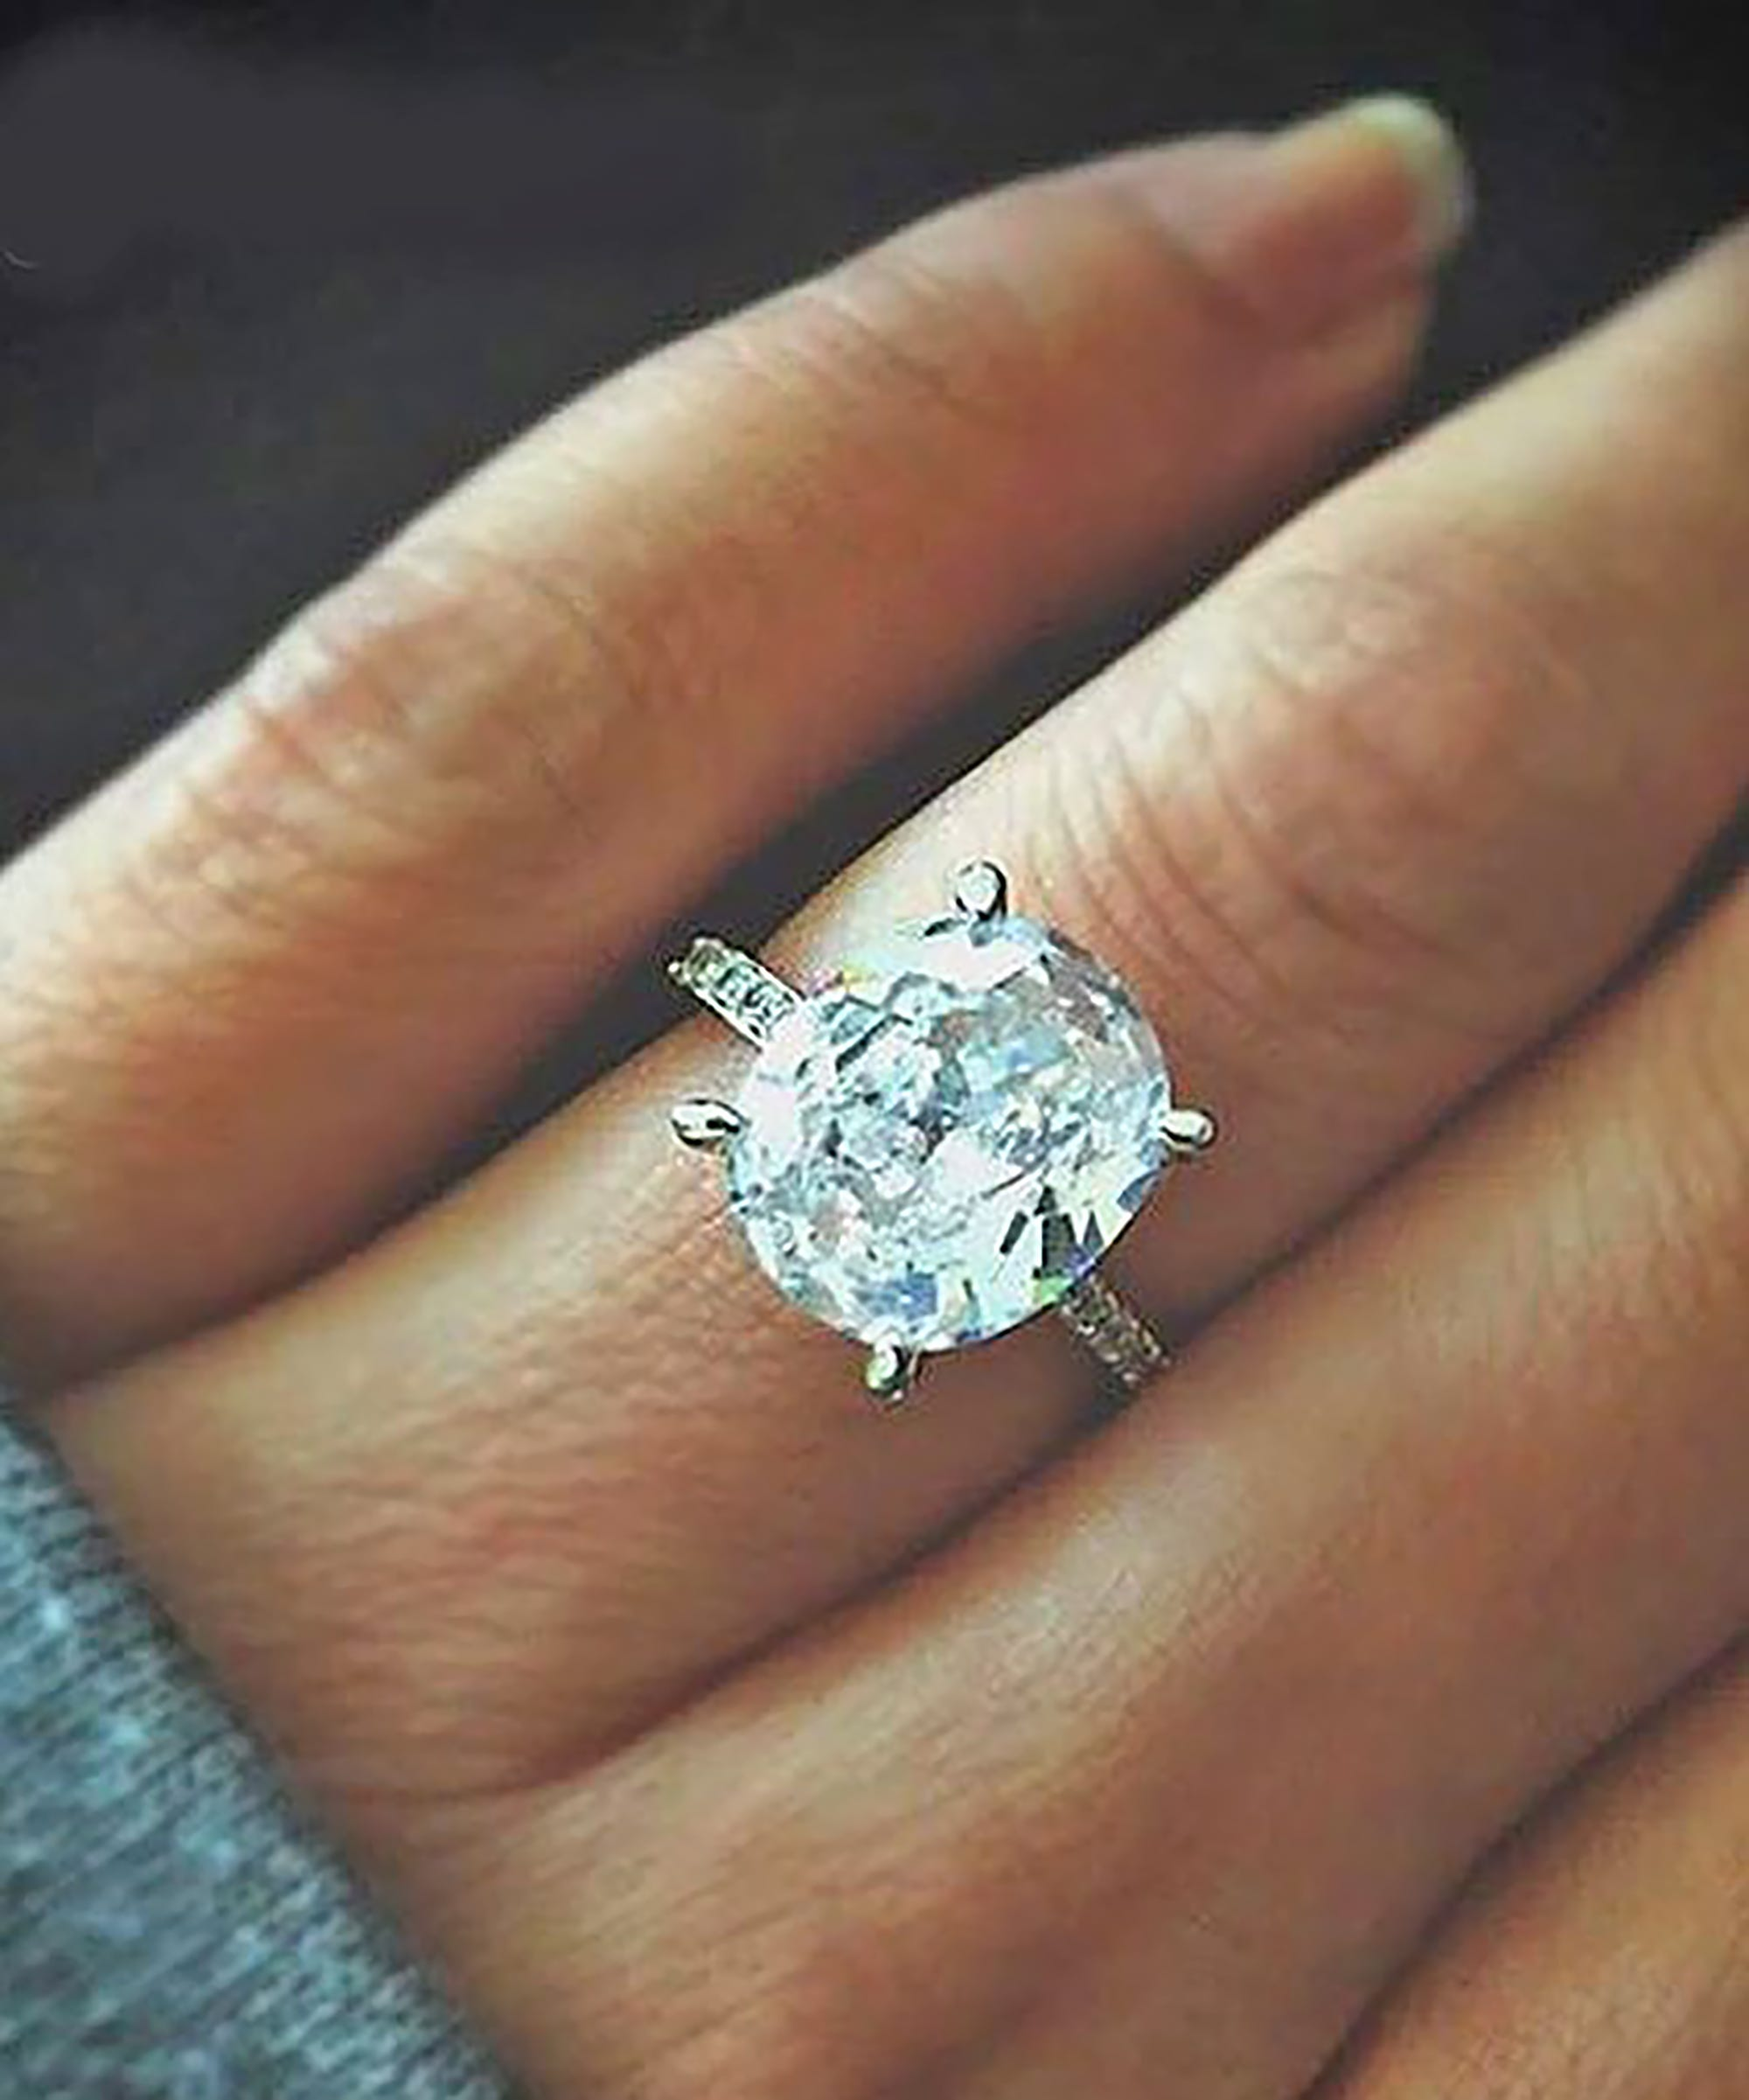 rings love jewellery to where big wedding inspiration popsugar engagement ring get sex